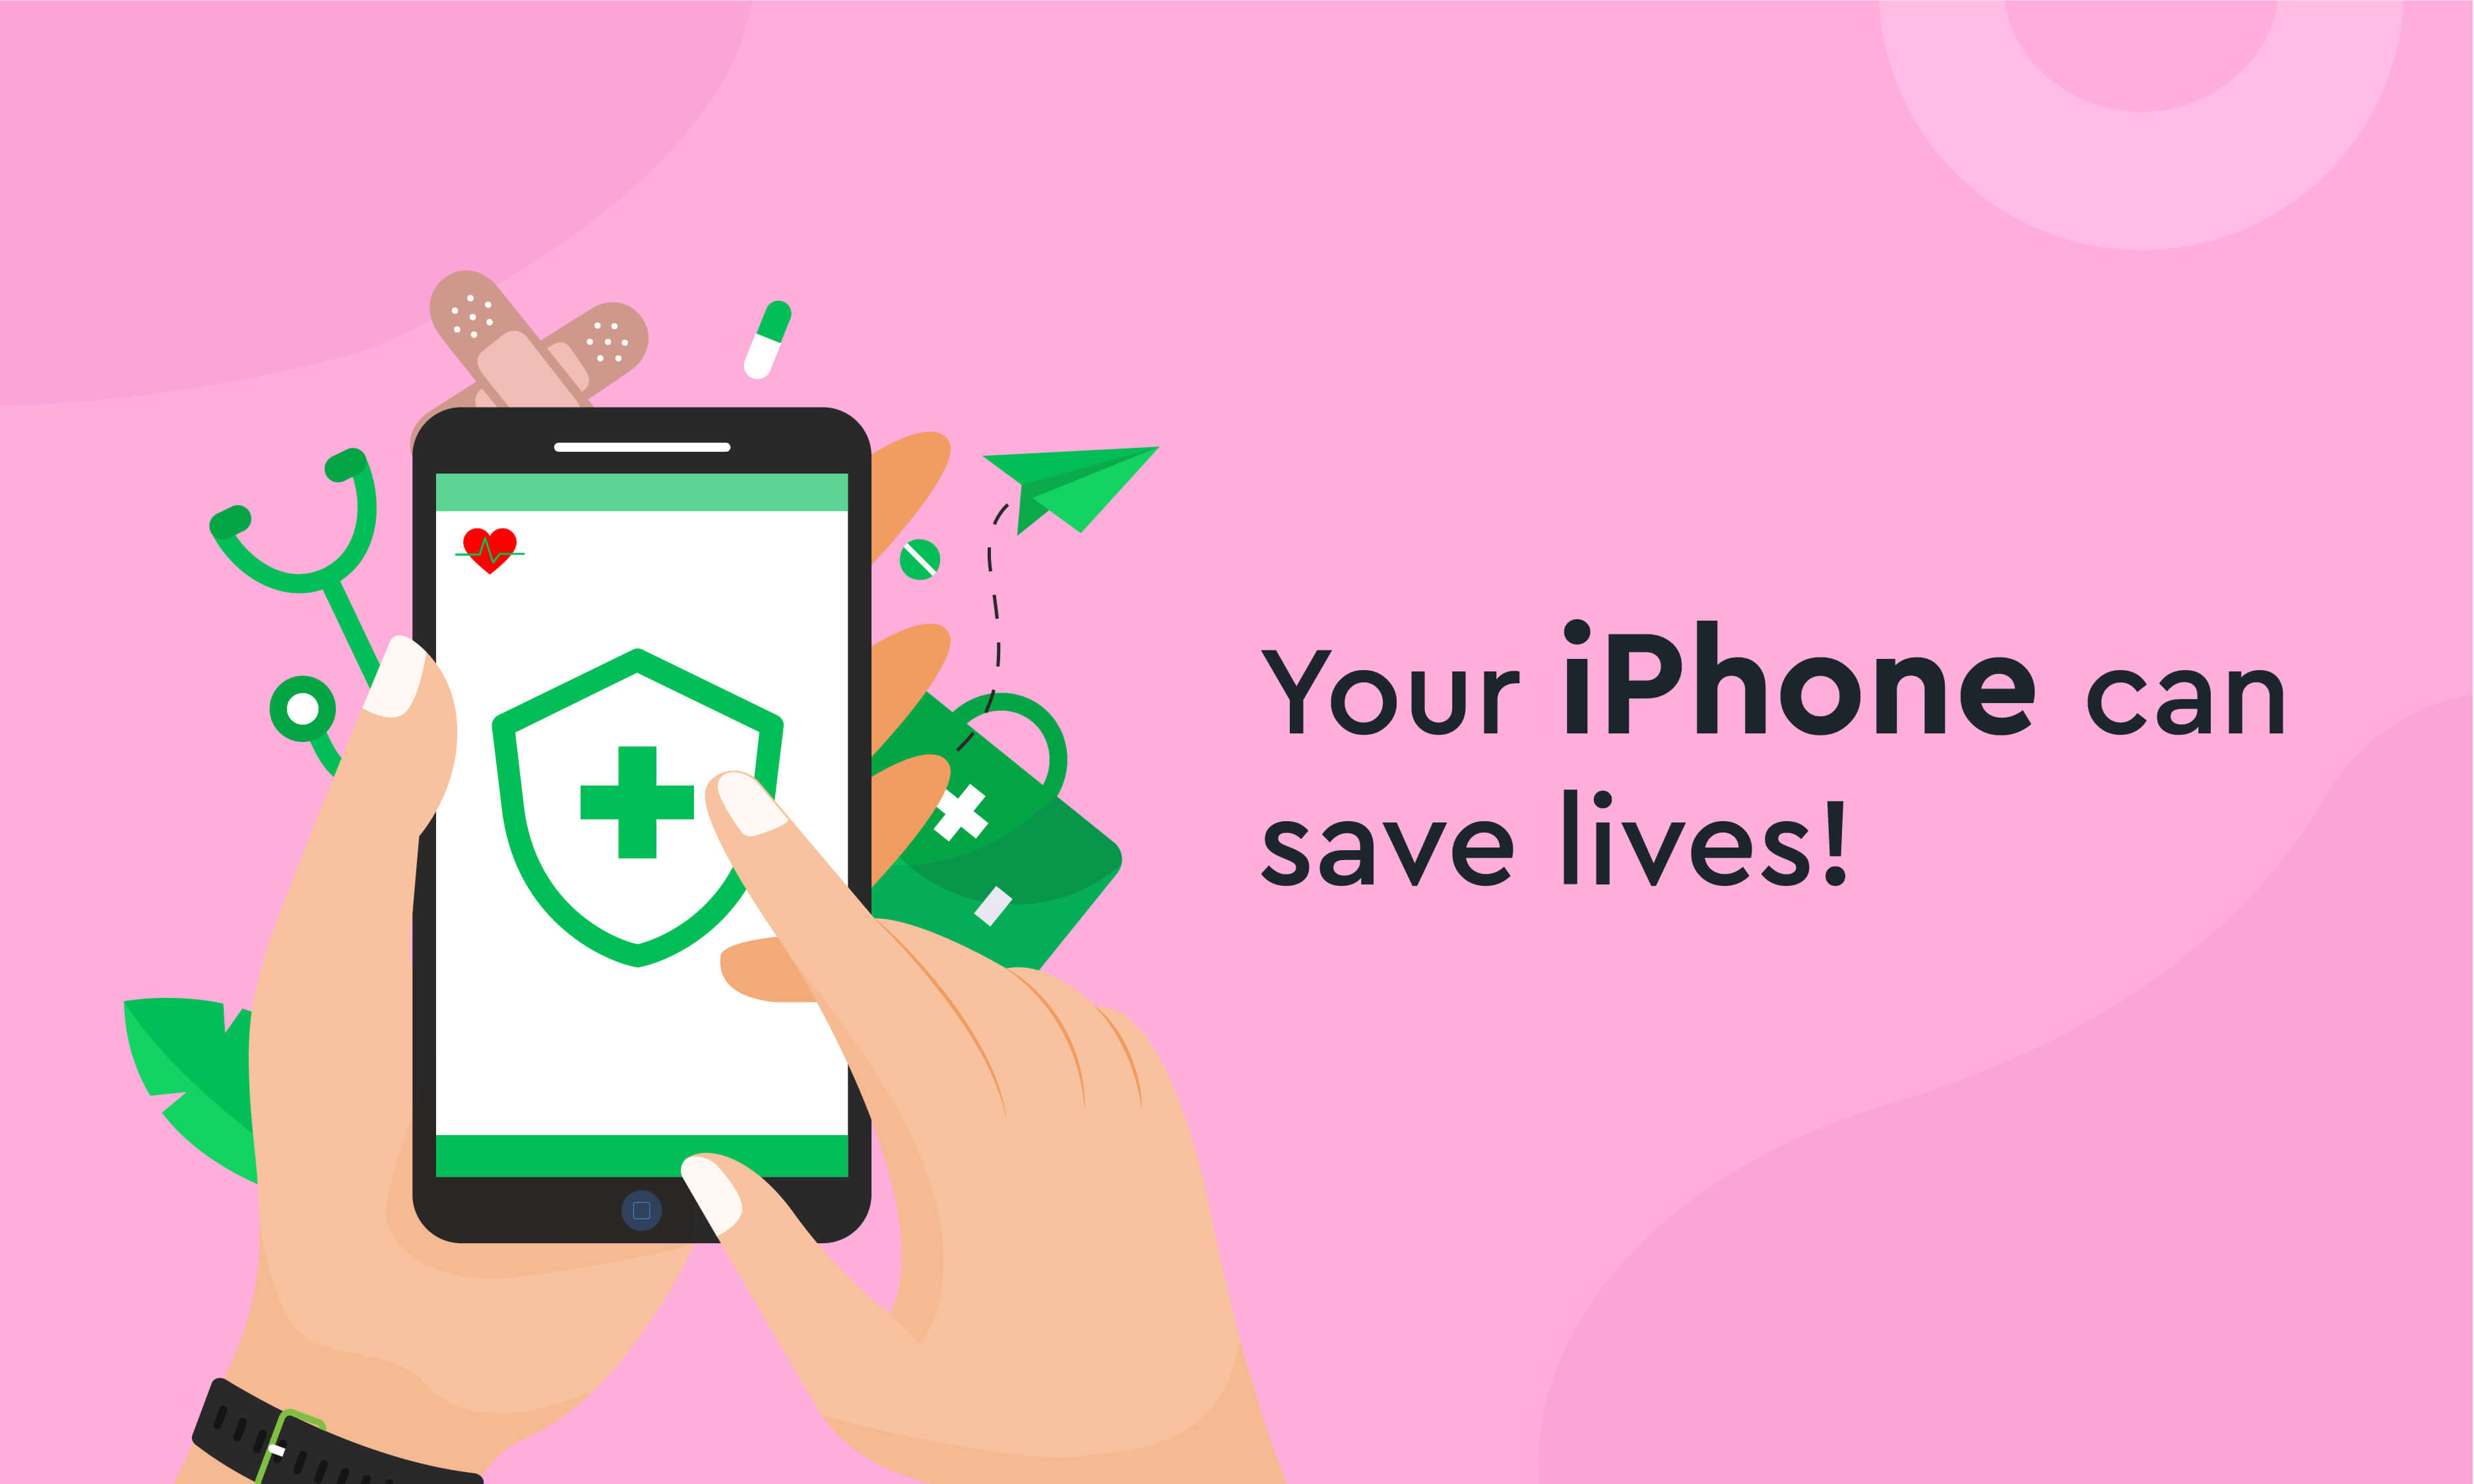 Your iPhone can save Lives!